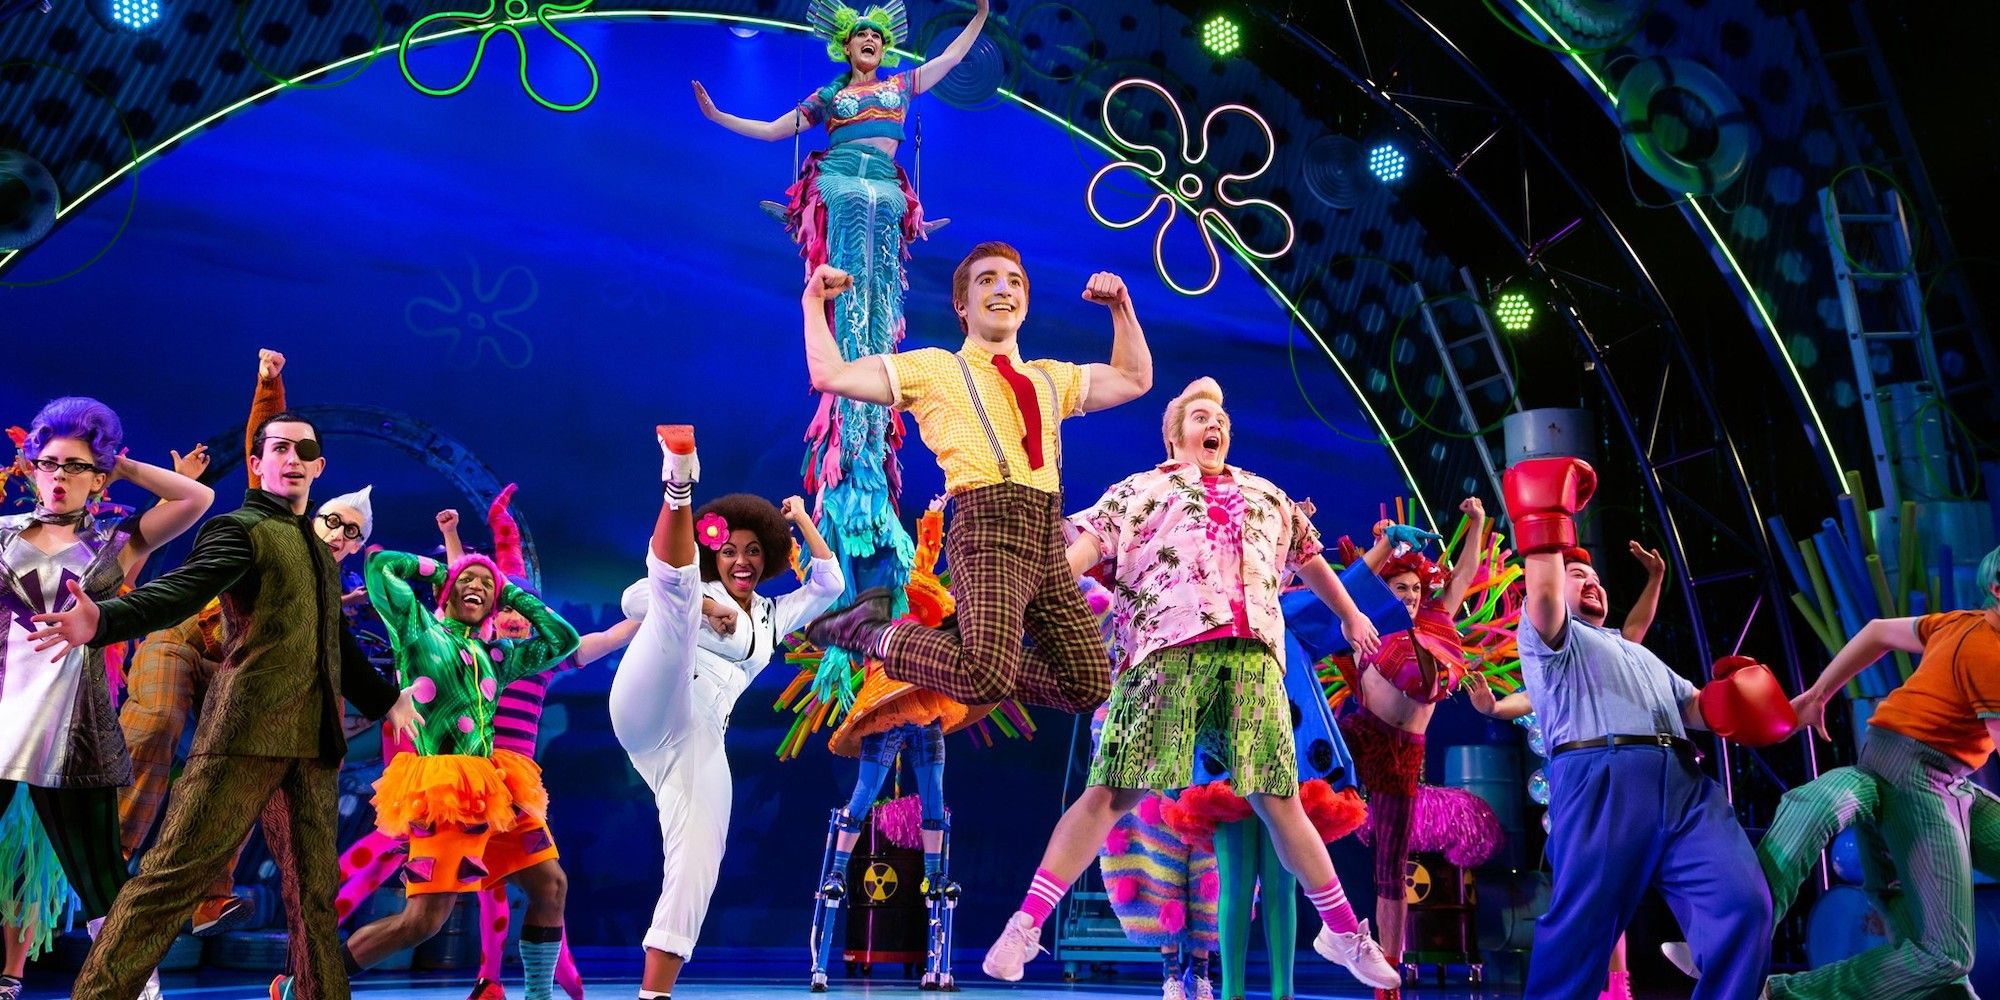 REVIEW: The SpongeBob Musical Is Must-See TV (No, Seriously!)